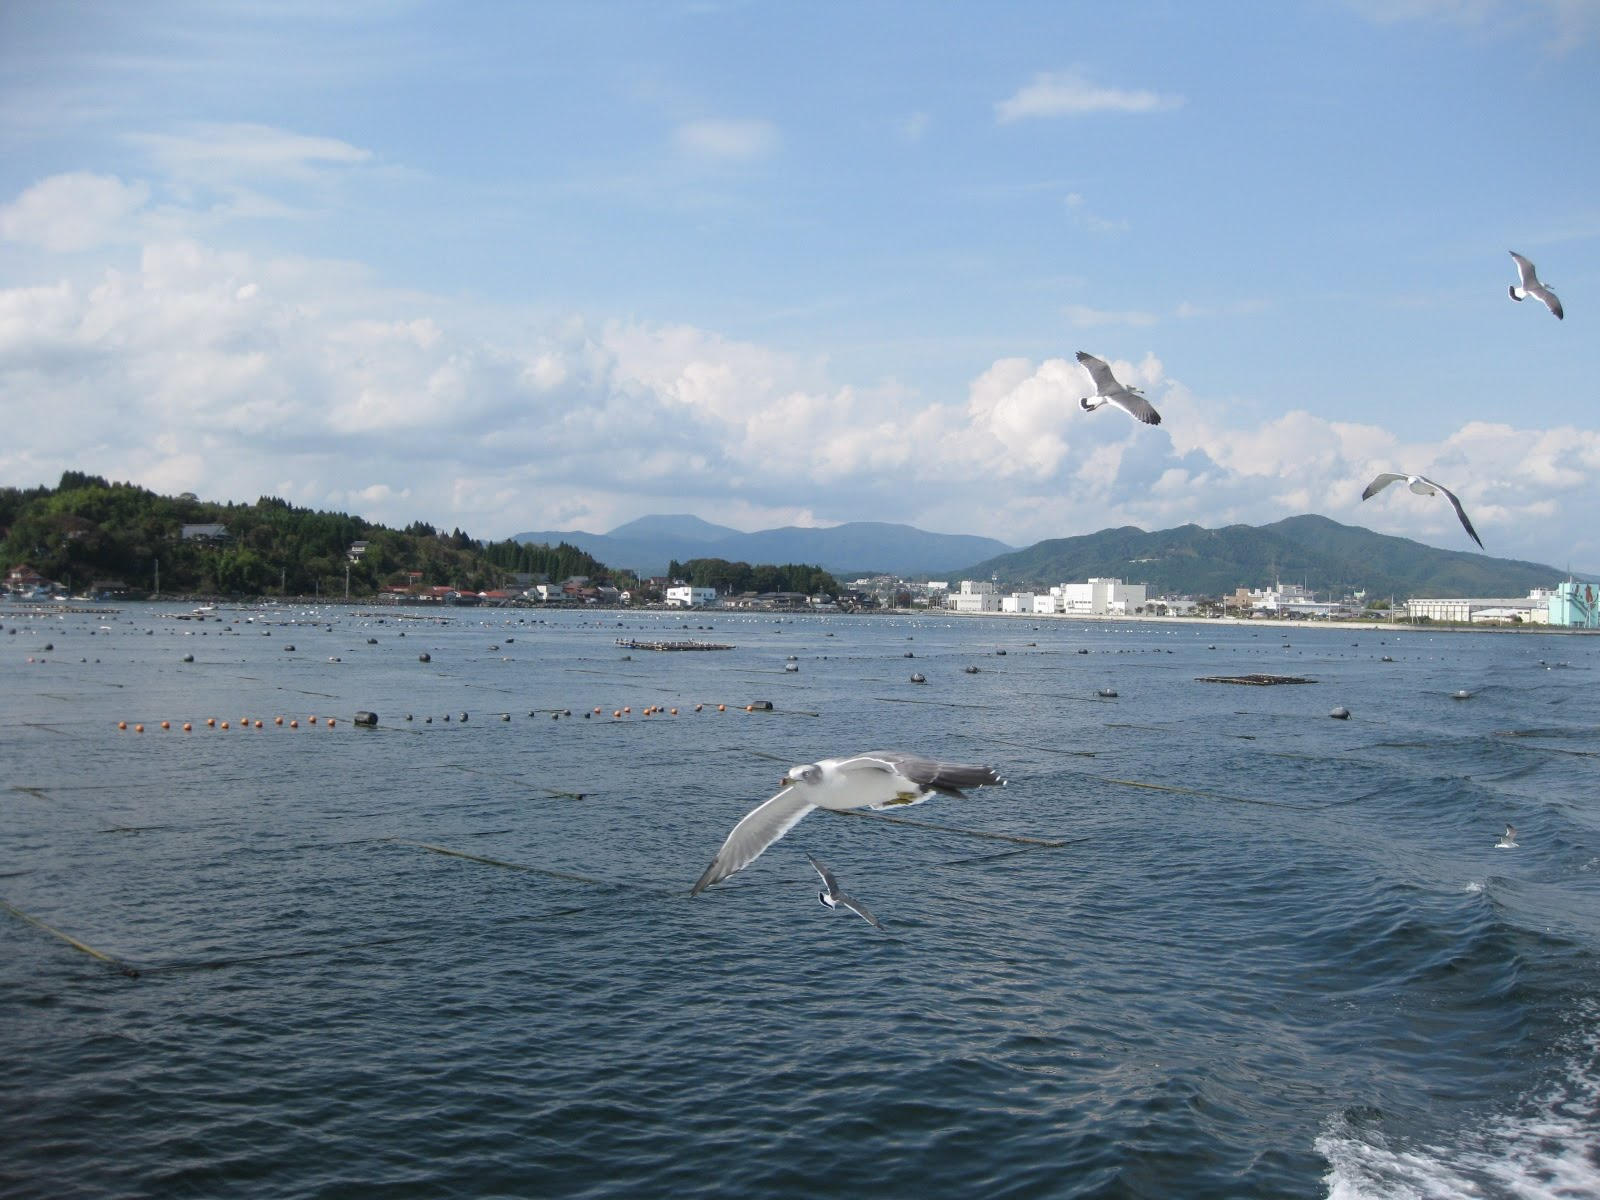 Kurashi - News From Japan: June 2010